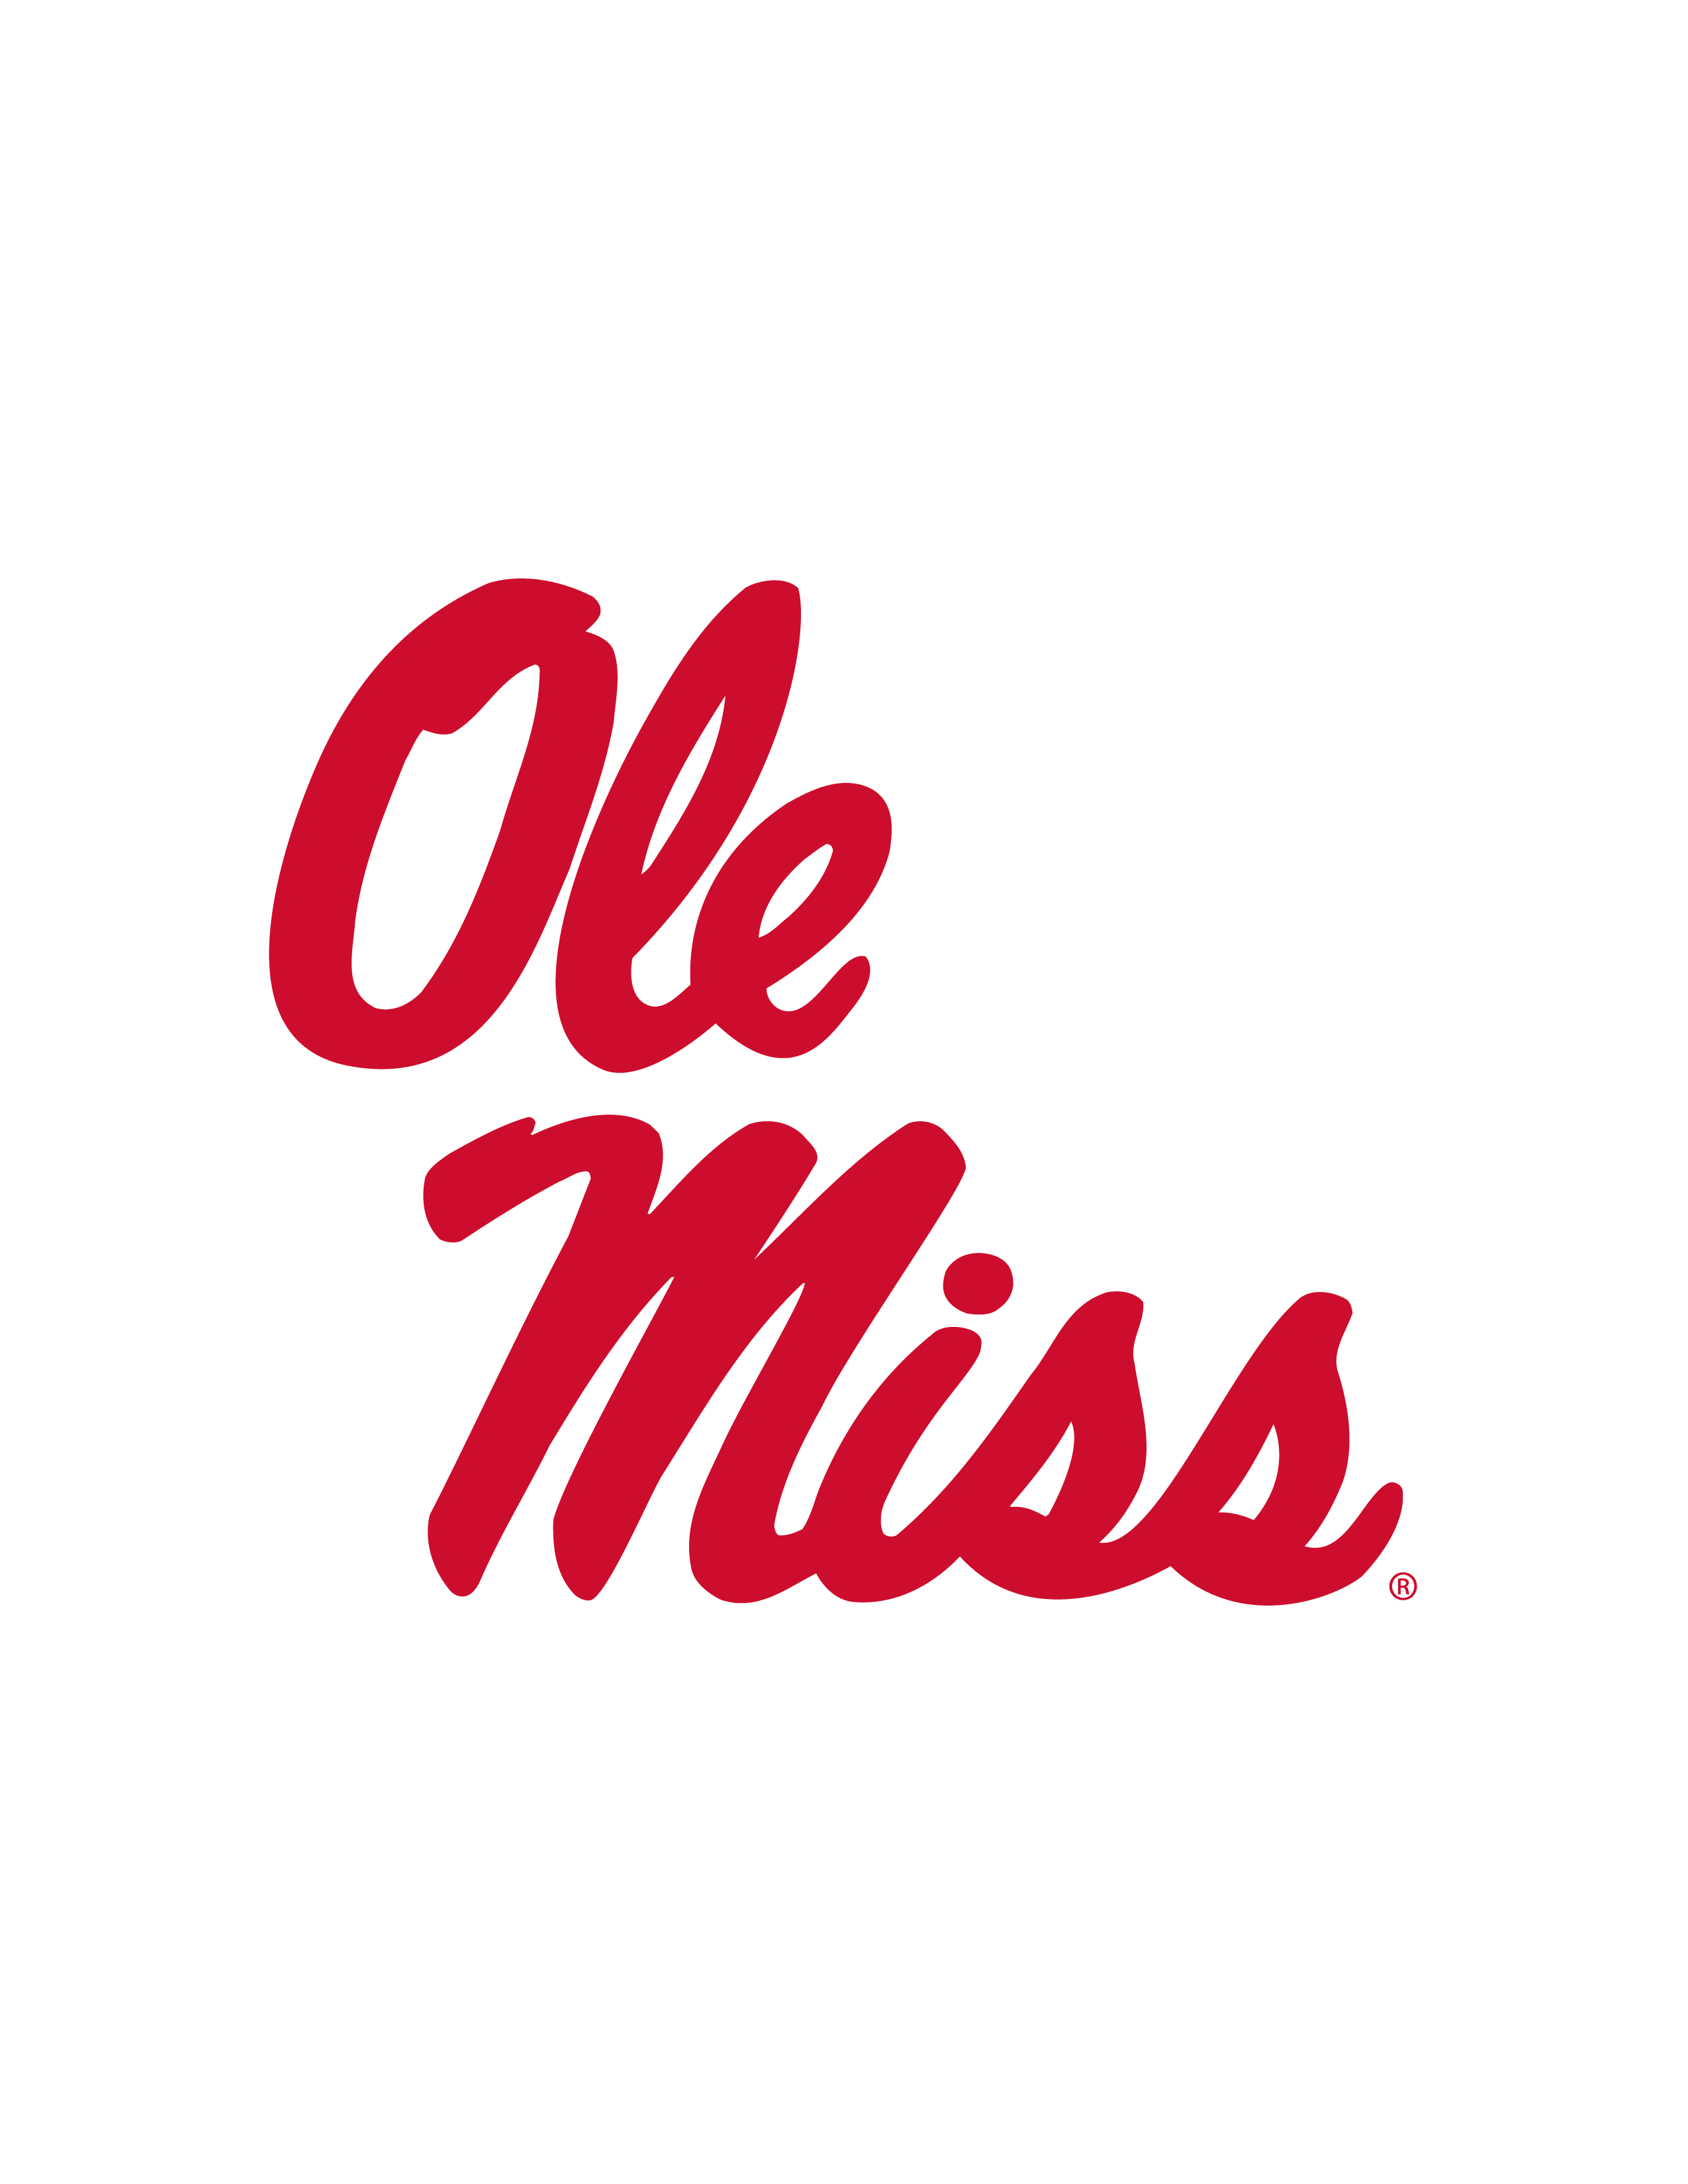 University of Mississippi Ole Miss Rebels football.